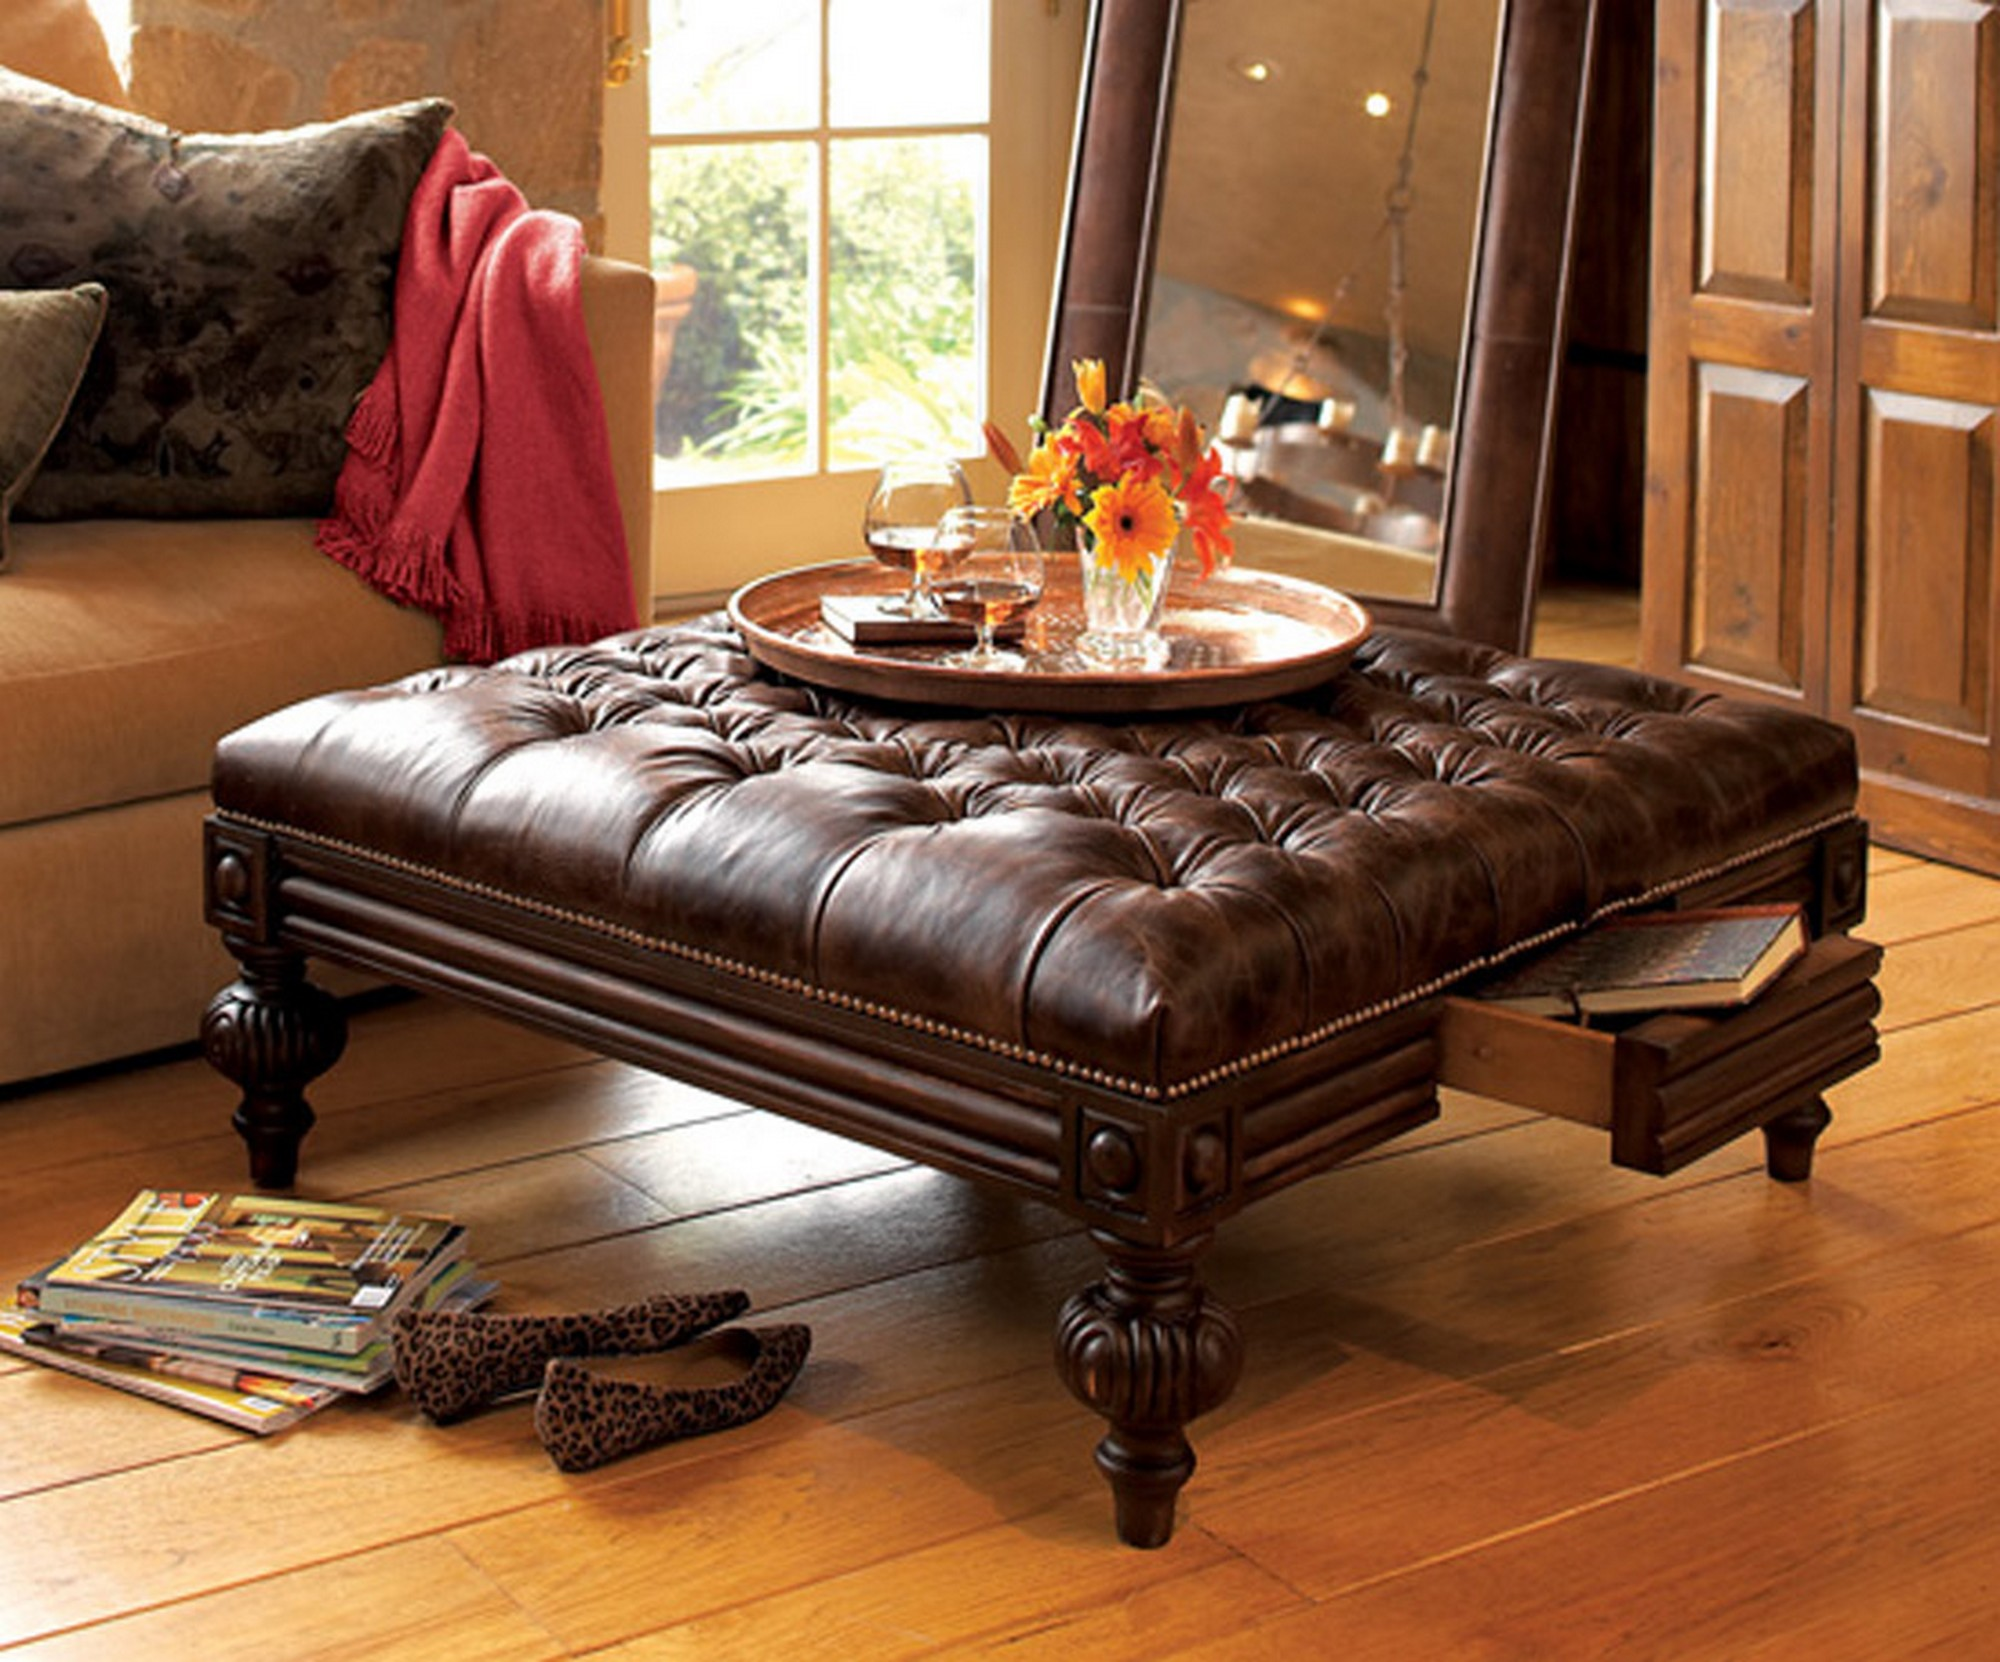 10 s Extra Round Coffee Table Furniture